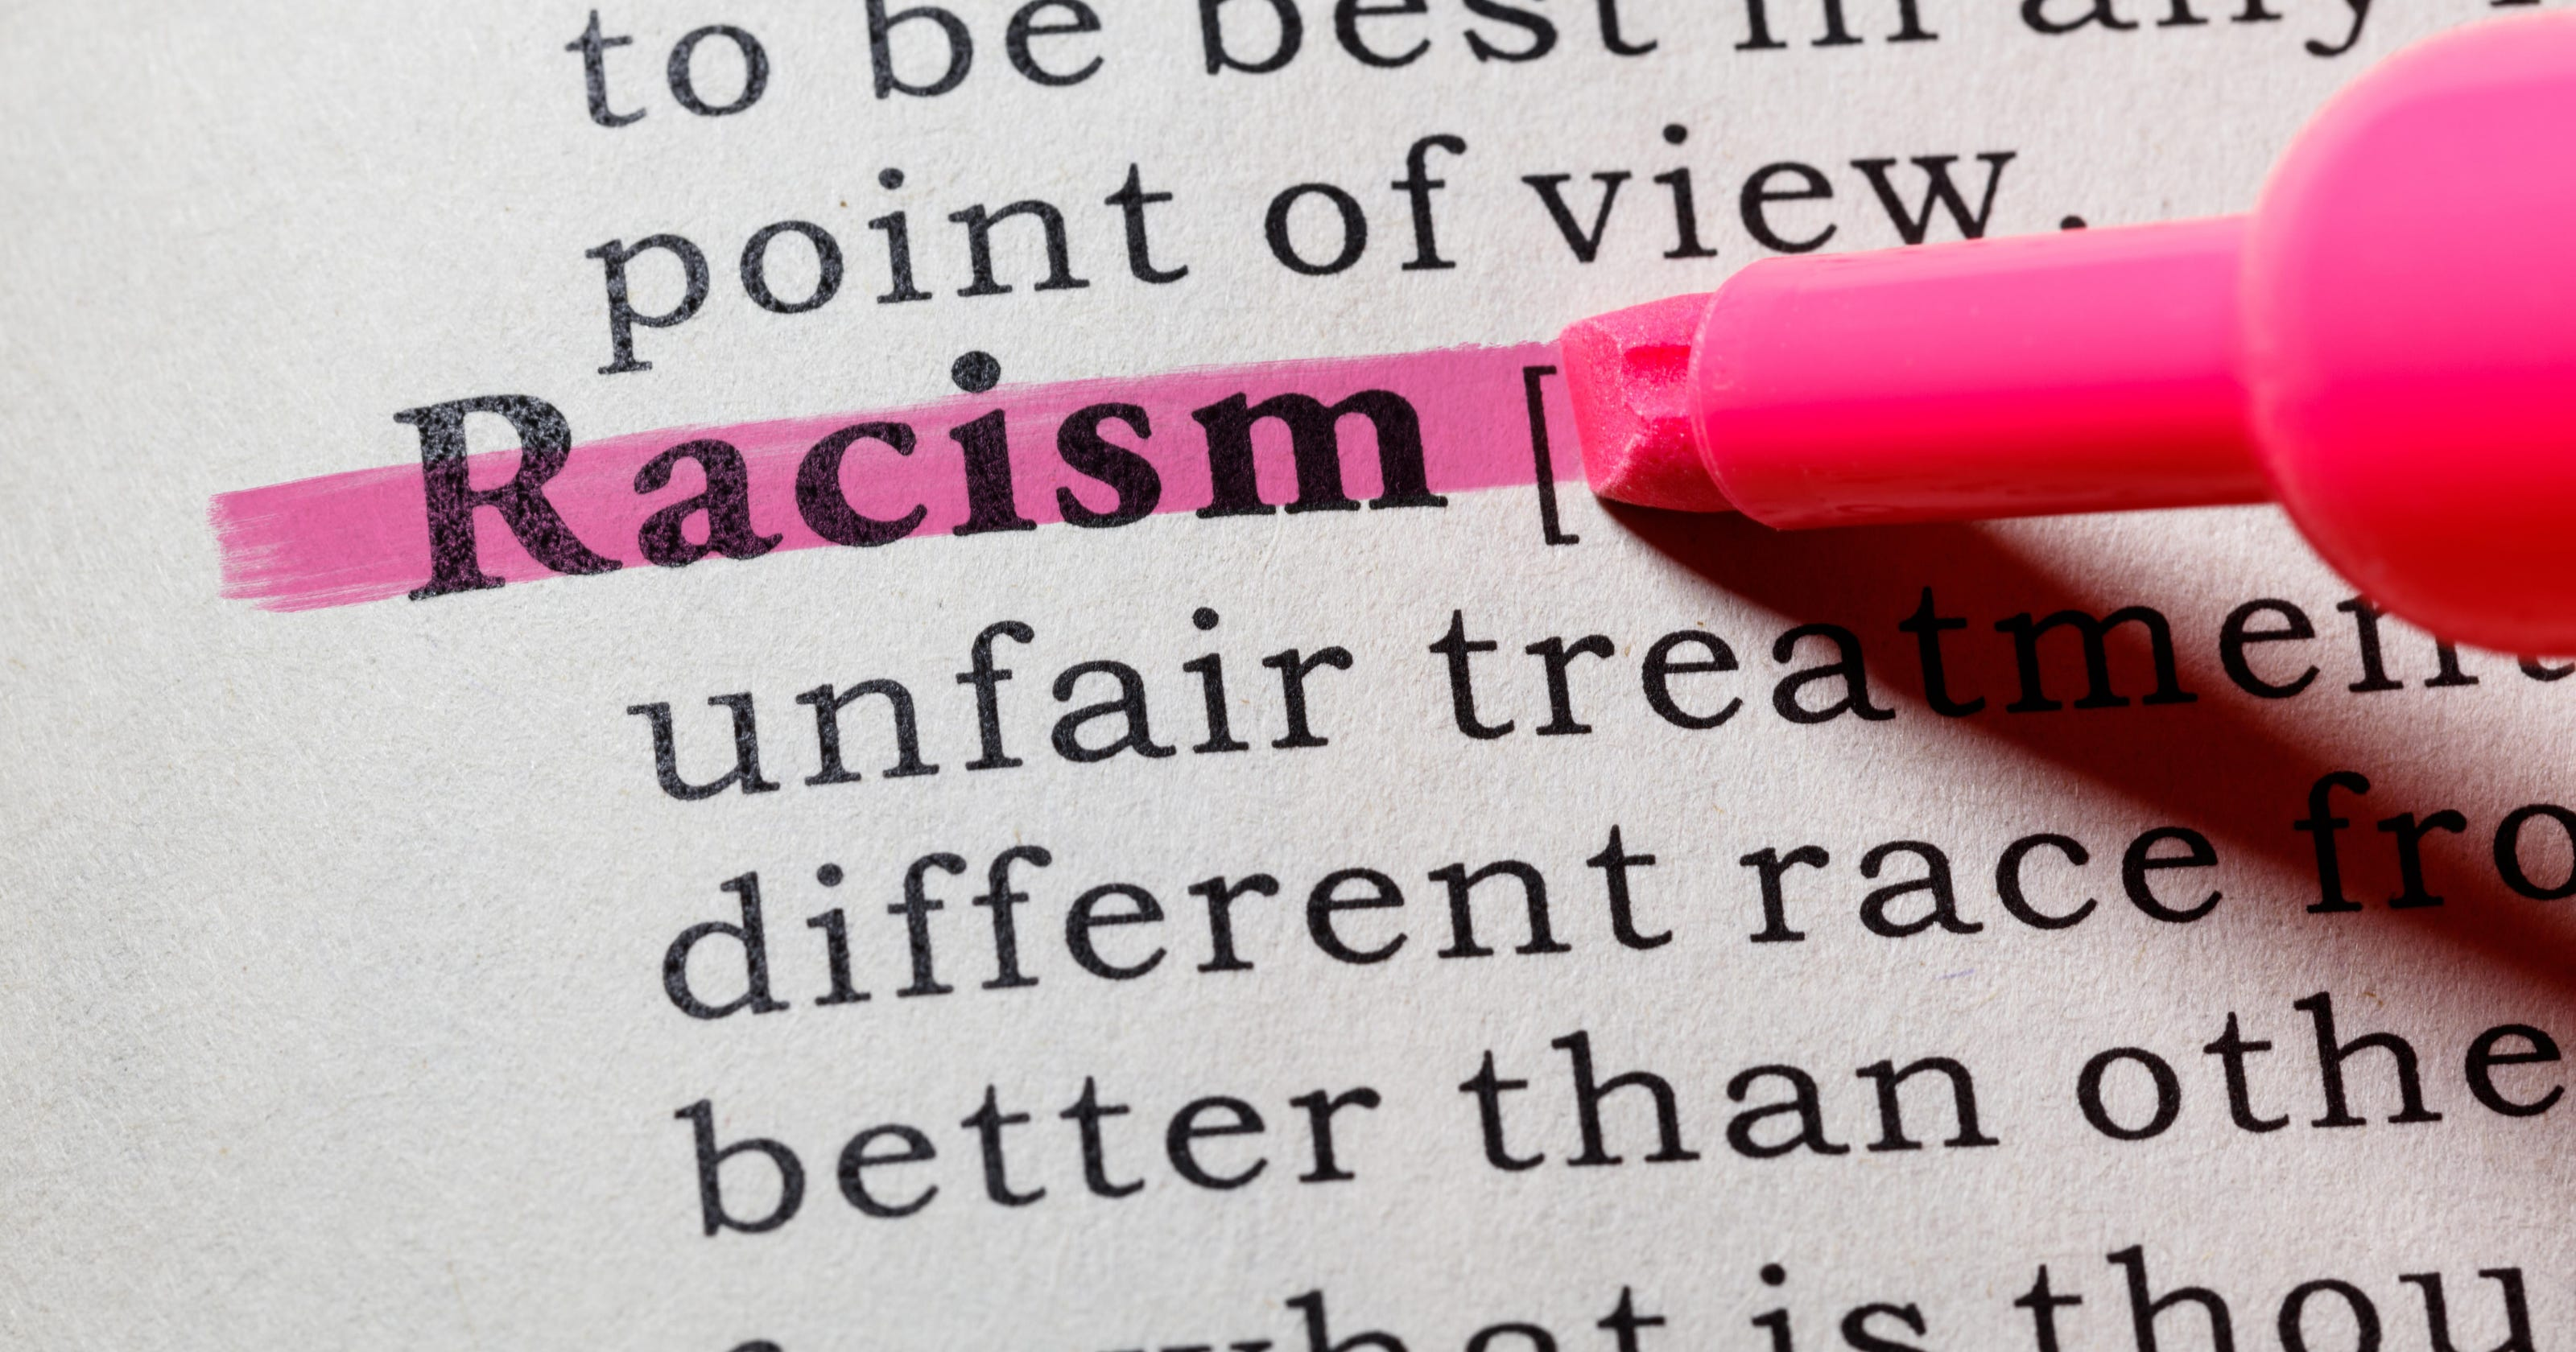 pretending racism doesn't exist isn't working. time to talk about bias